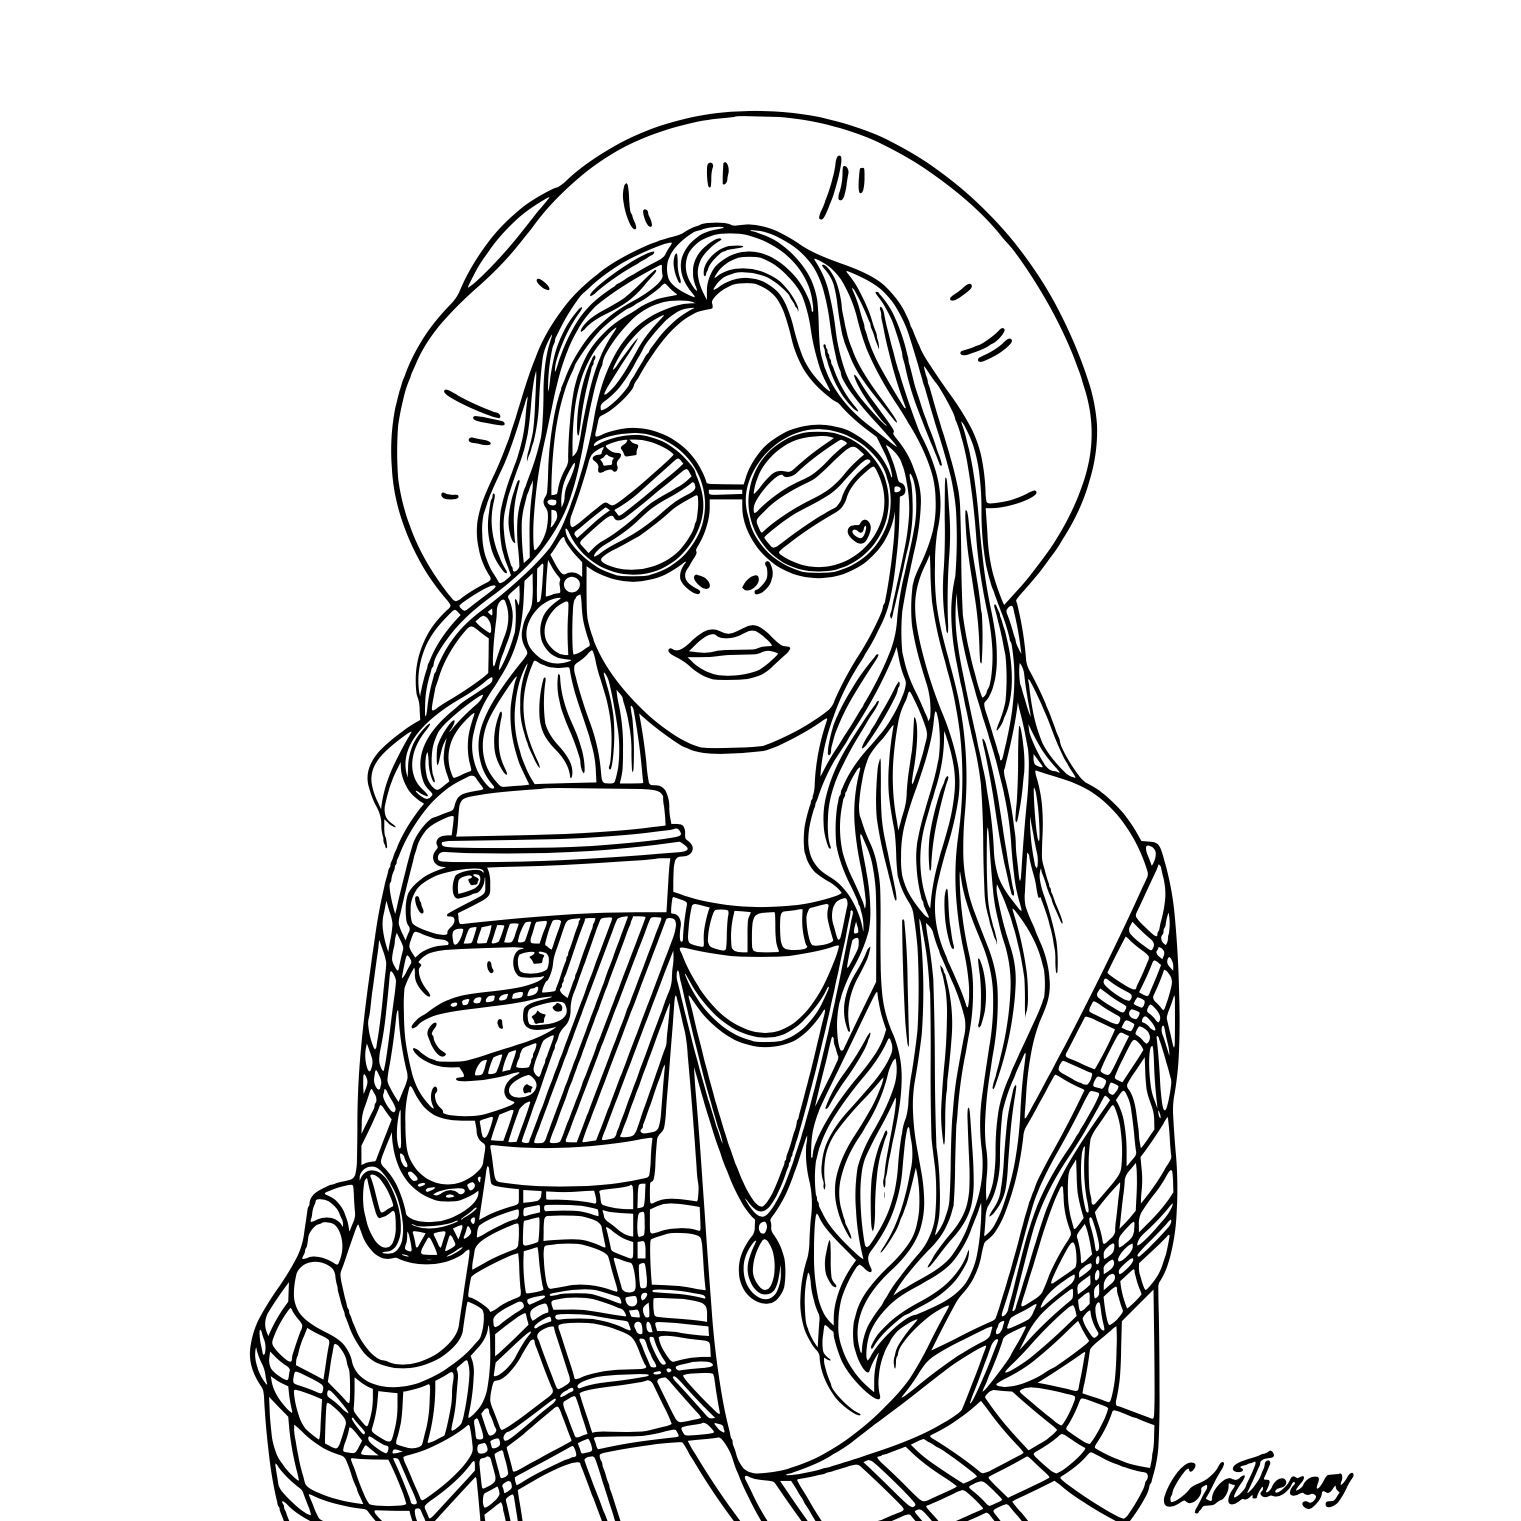 Top Coloring Pages Of People In 2021 People Coloring Pages Cute Coloring Pages Coloring Pages For Girls